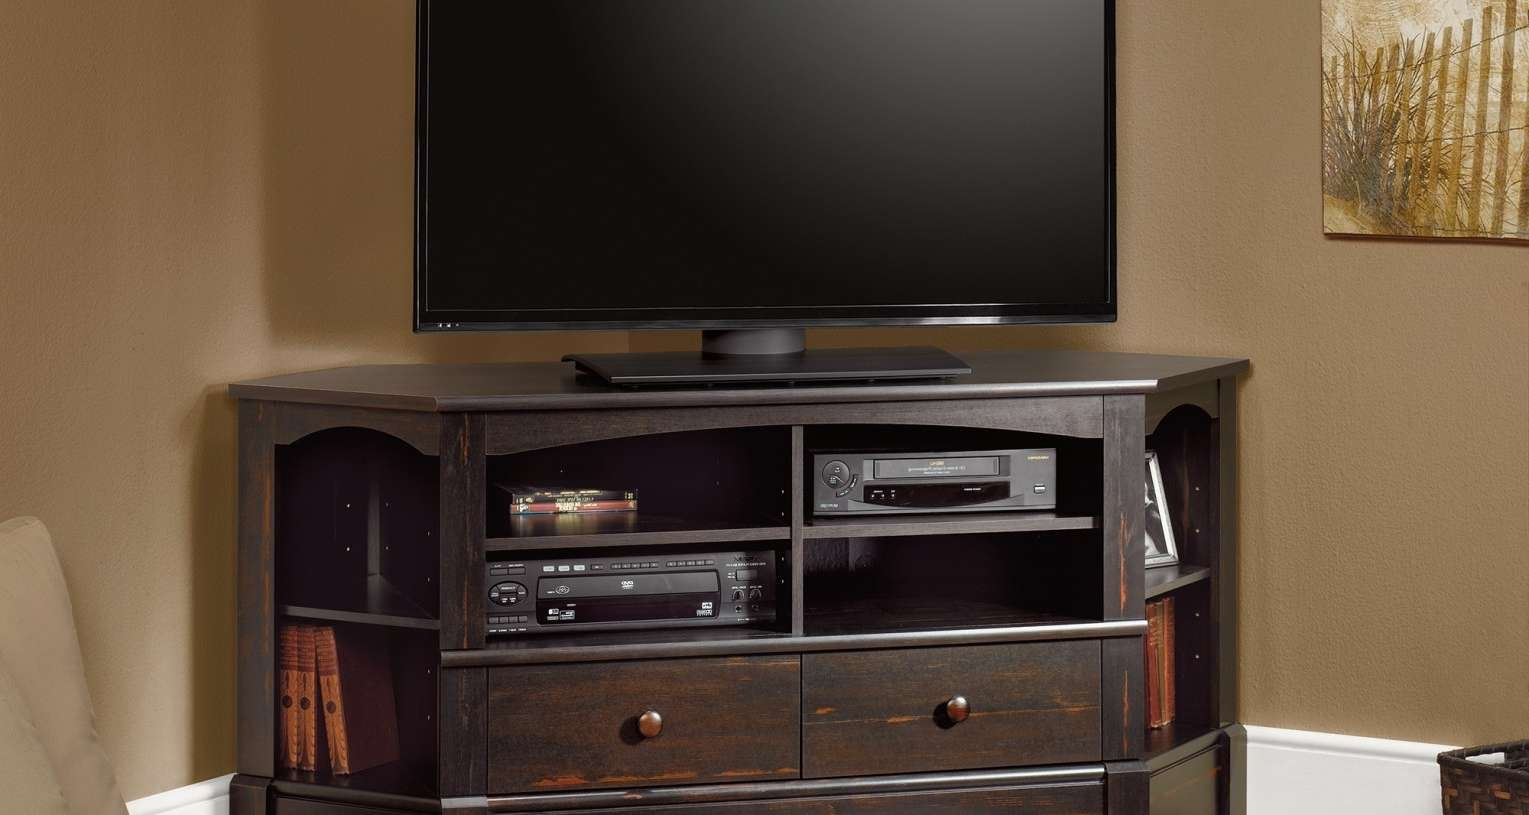 Cabinet : Black Mahogany Wood Corner Tv Stand With Storage Shelves Regarding Mahogany Corner Tv Stands (View 12 of 15)